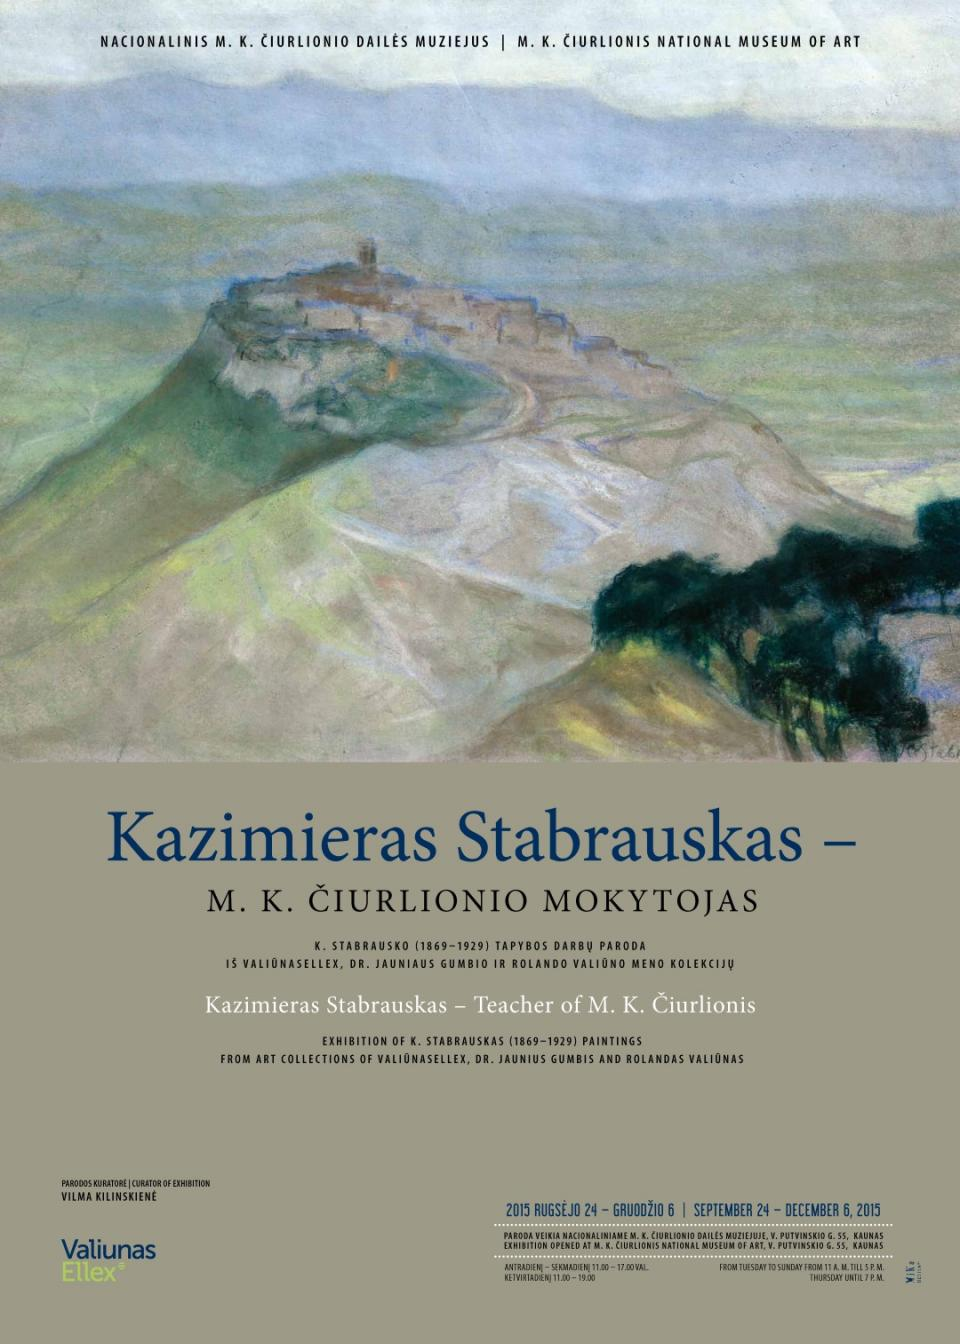 "The Exhibition ""Kazimierz Stabrowski, the Teacher of M. K. Čiurlionis"", September 2015 - January 2016"